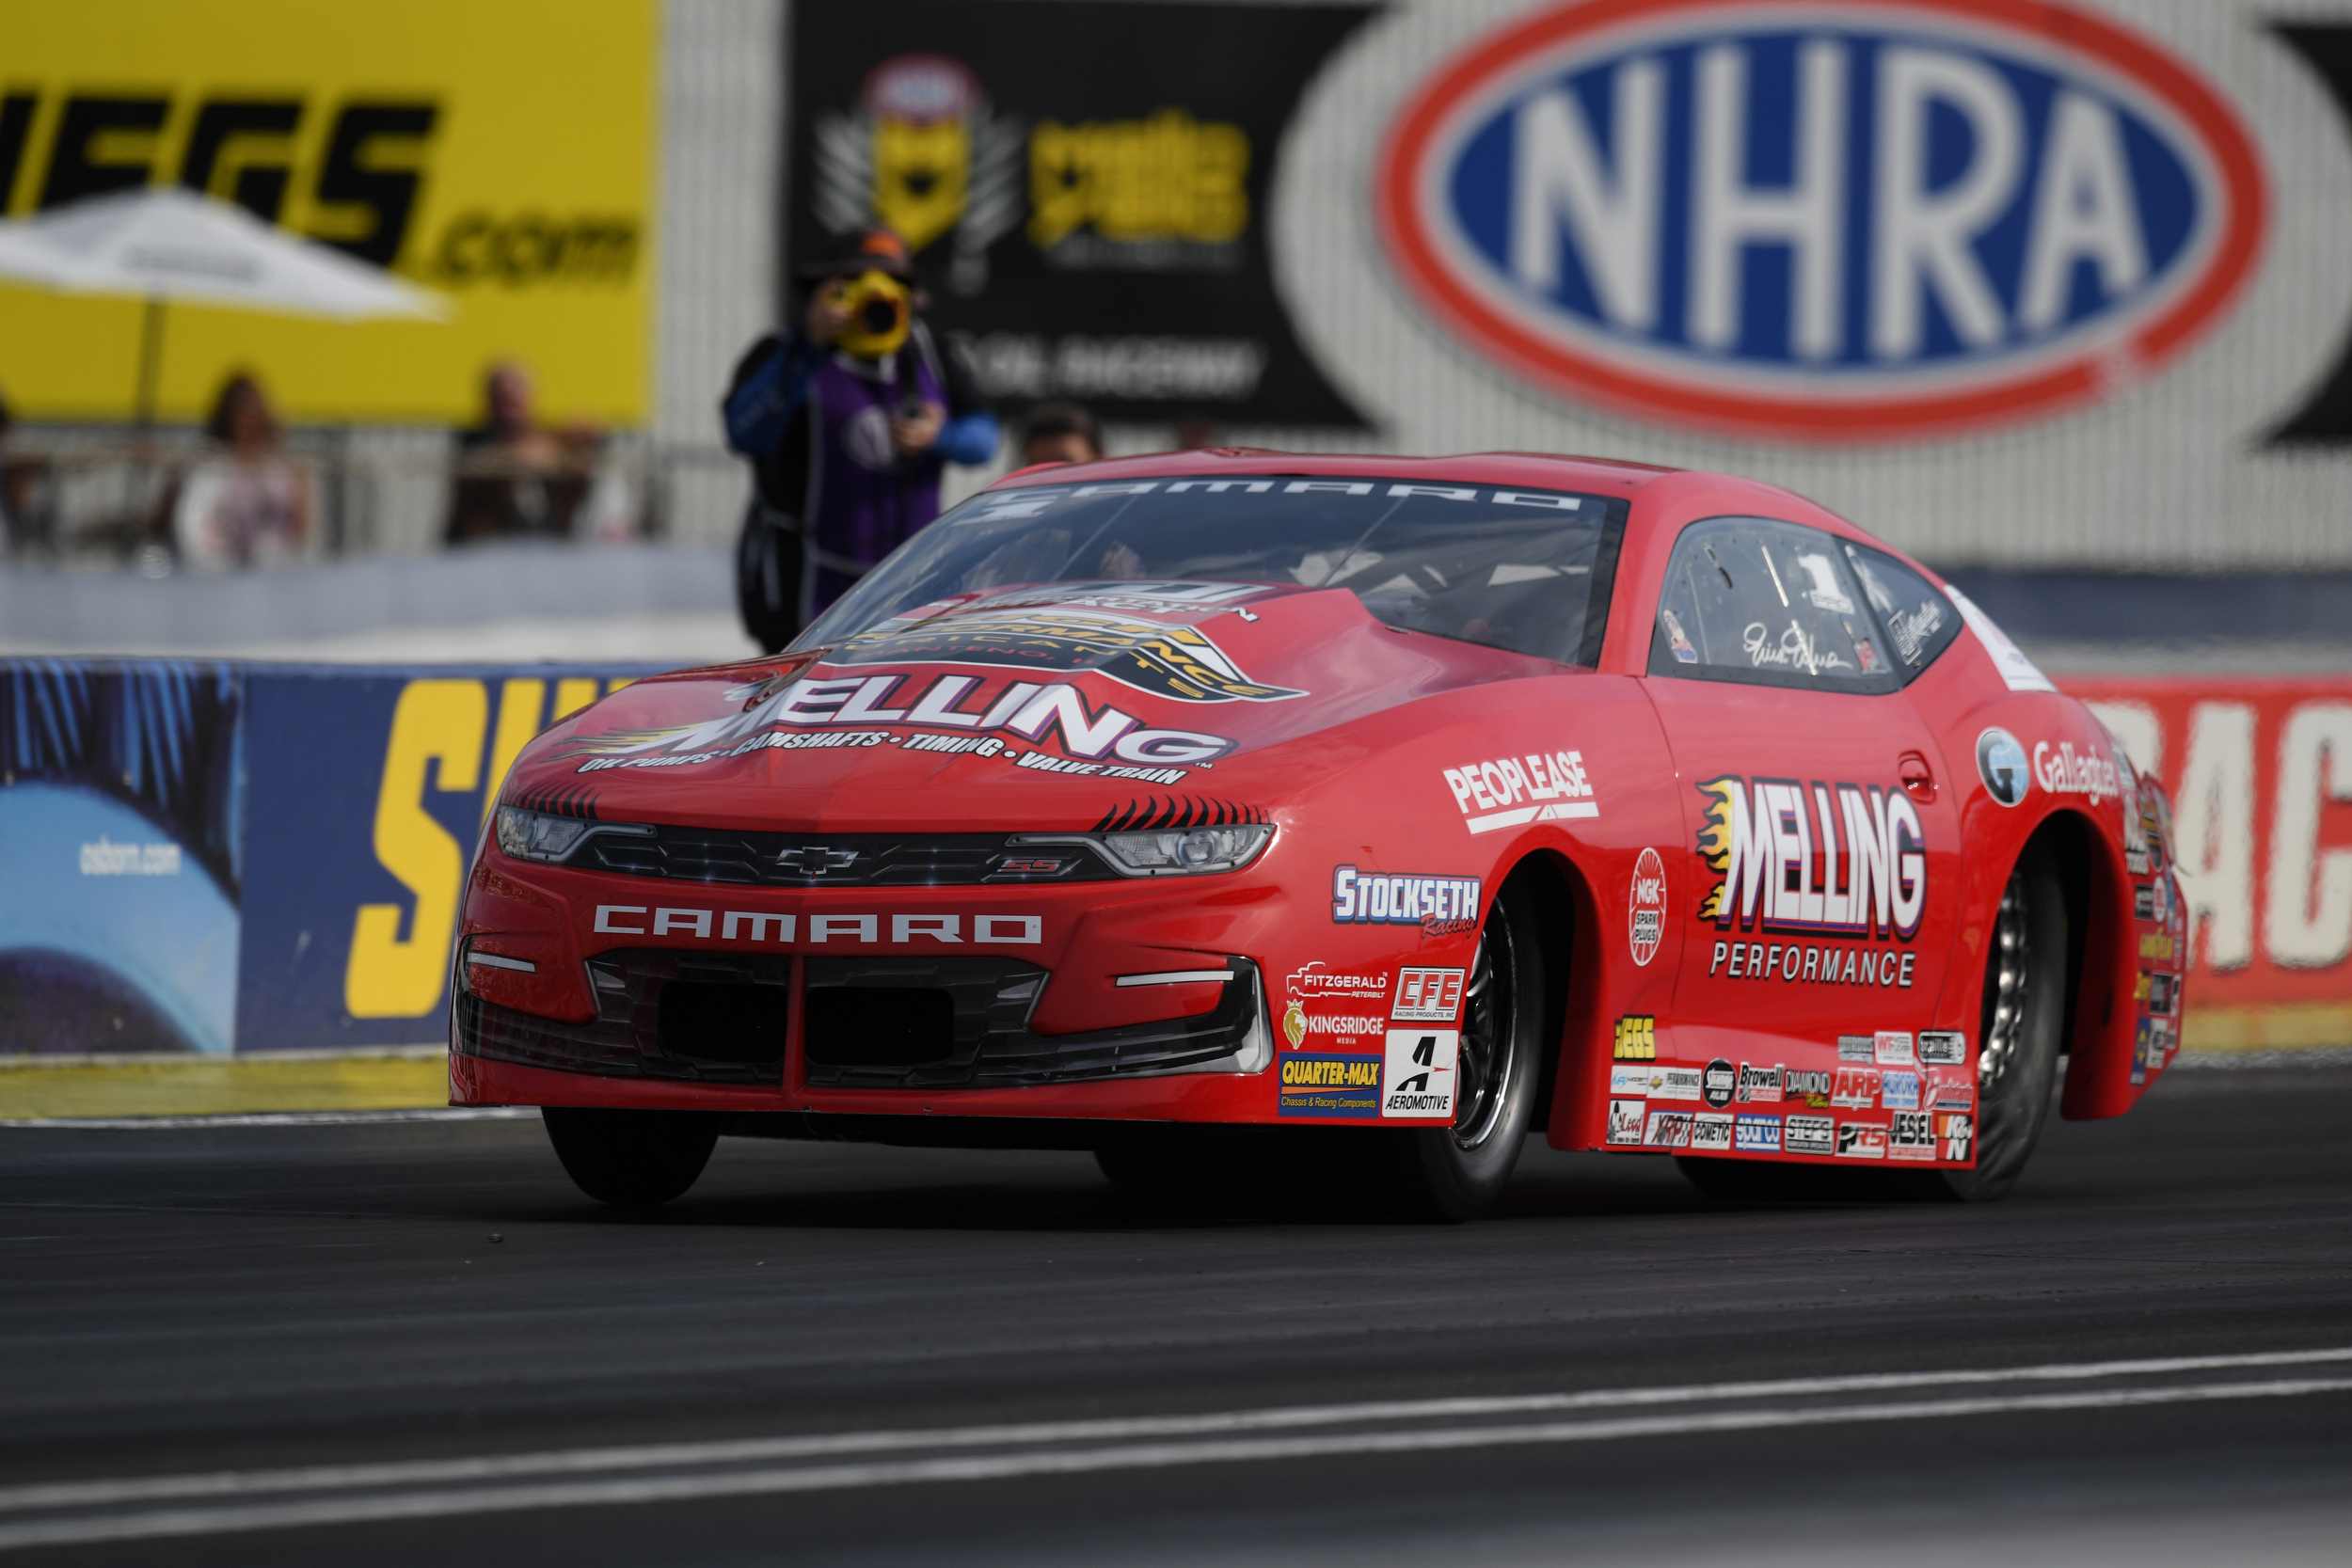 Melling Performance/Elite Performance Pro Stock driver Erica Enders racing on Sunday at the prestigious Denso Spark Plugs U.S. Nationals